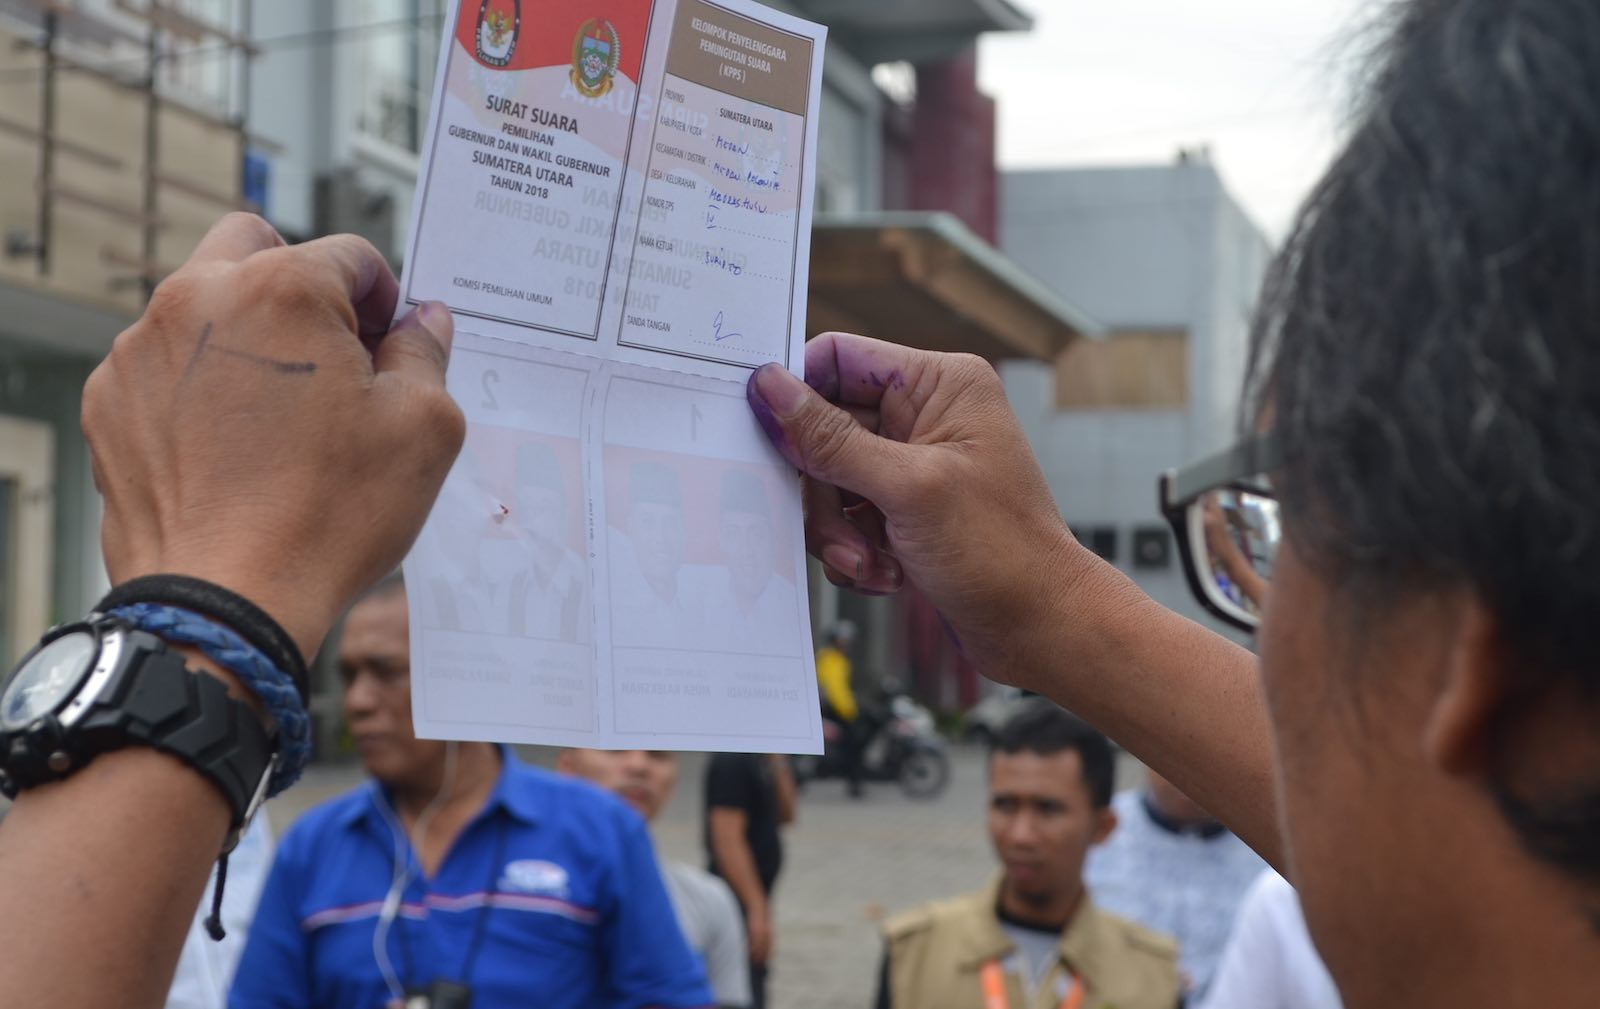 Madras Hulu polling station in Medan on 27 June (Photo: Teguh Harahap)